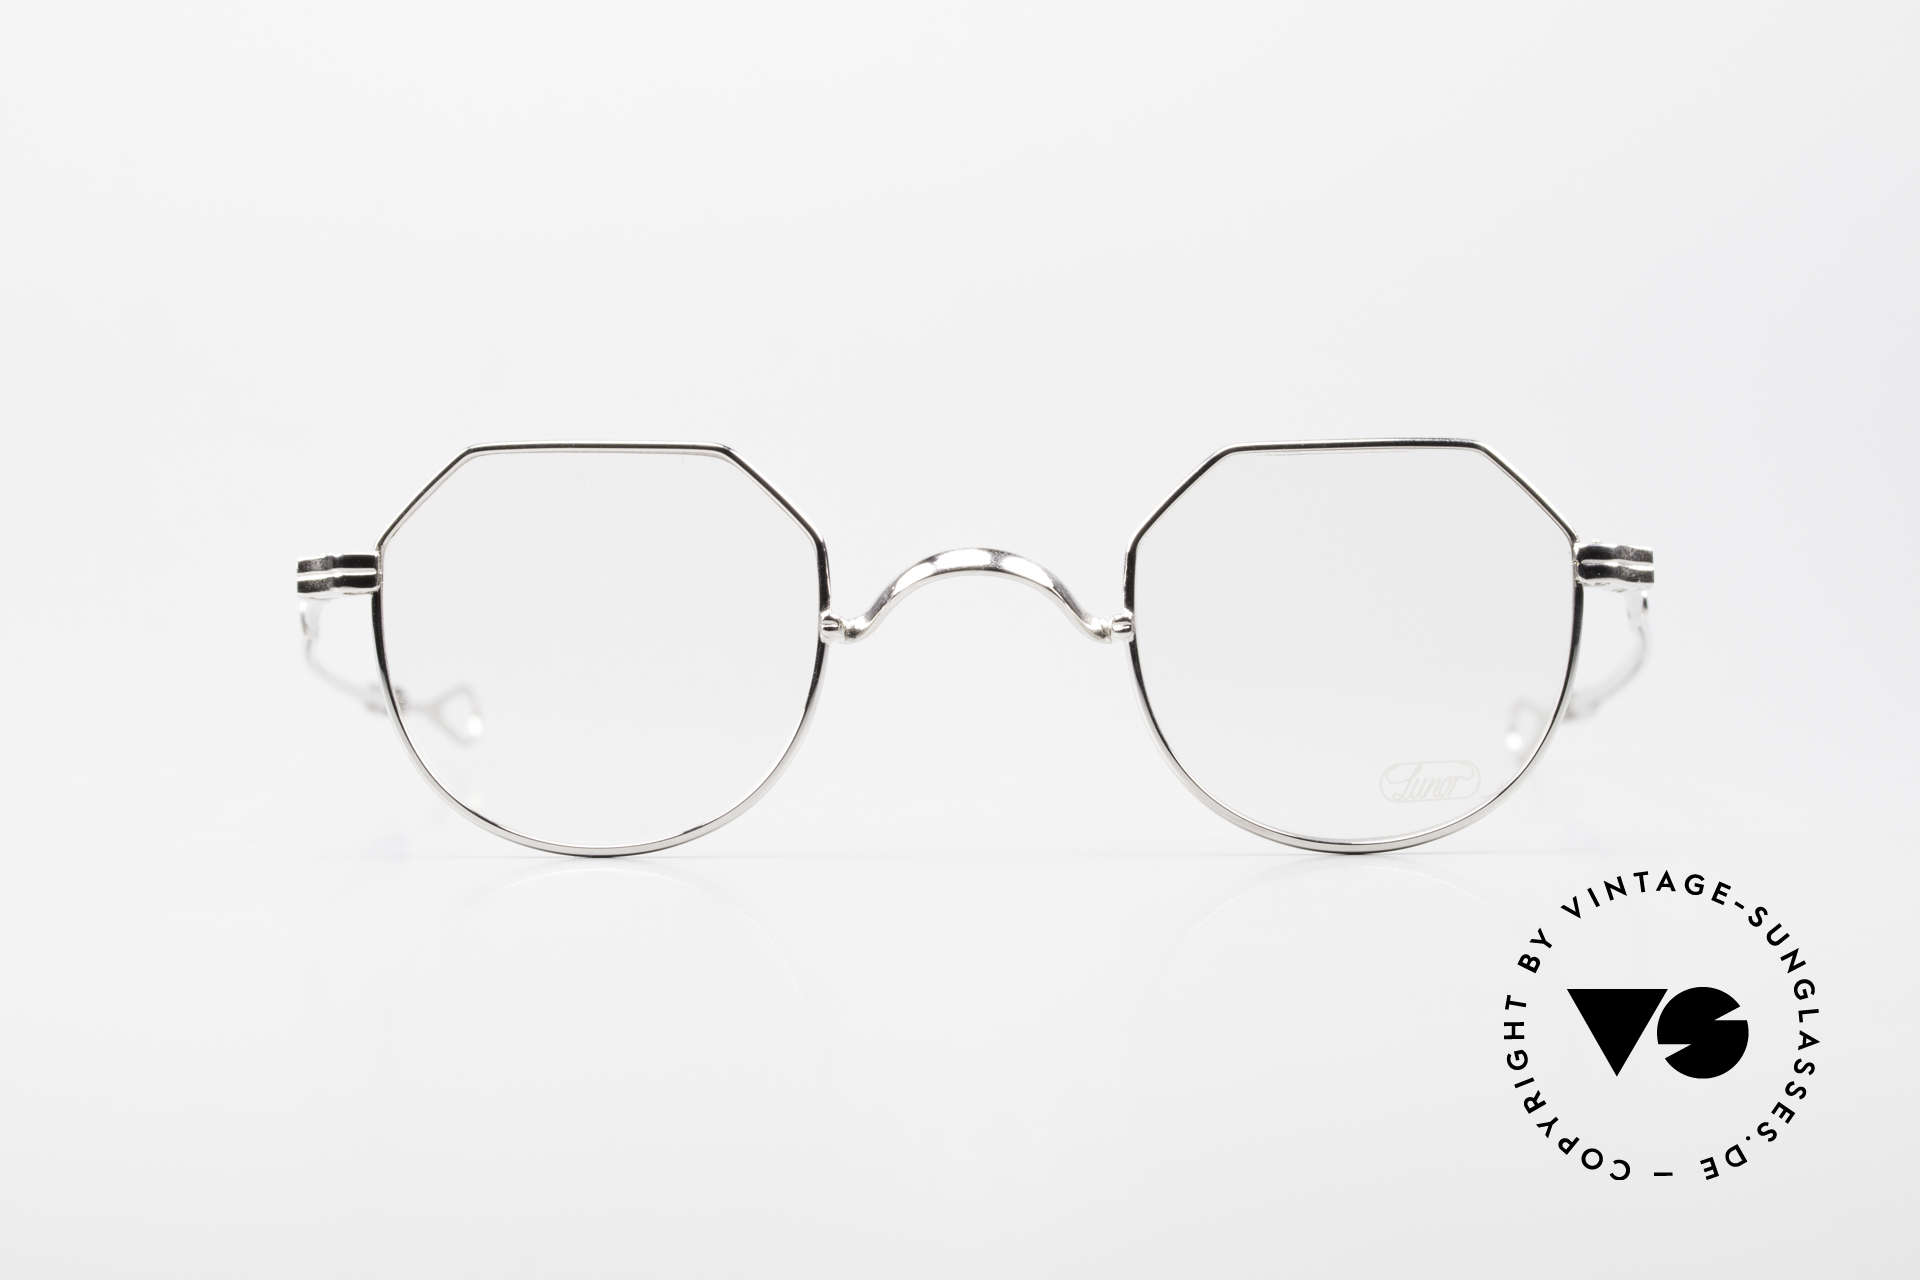 Lunor I 18 Telescopic Telescopic Platinum Frame, the (arms) temples are extendable like a telescope, Made for Men and Women